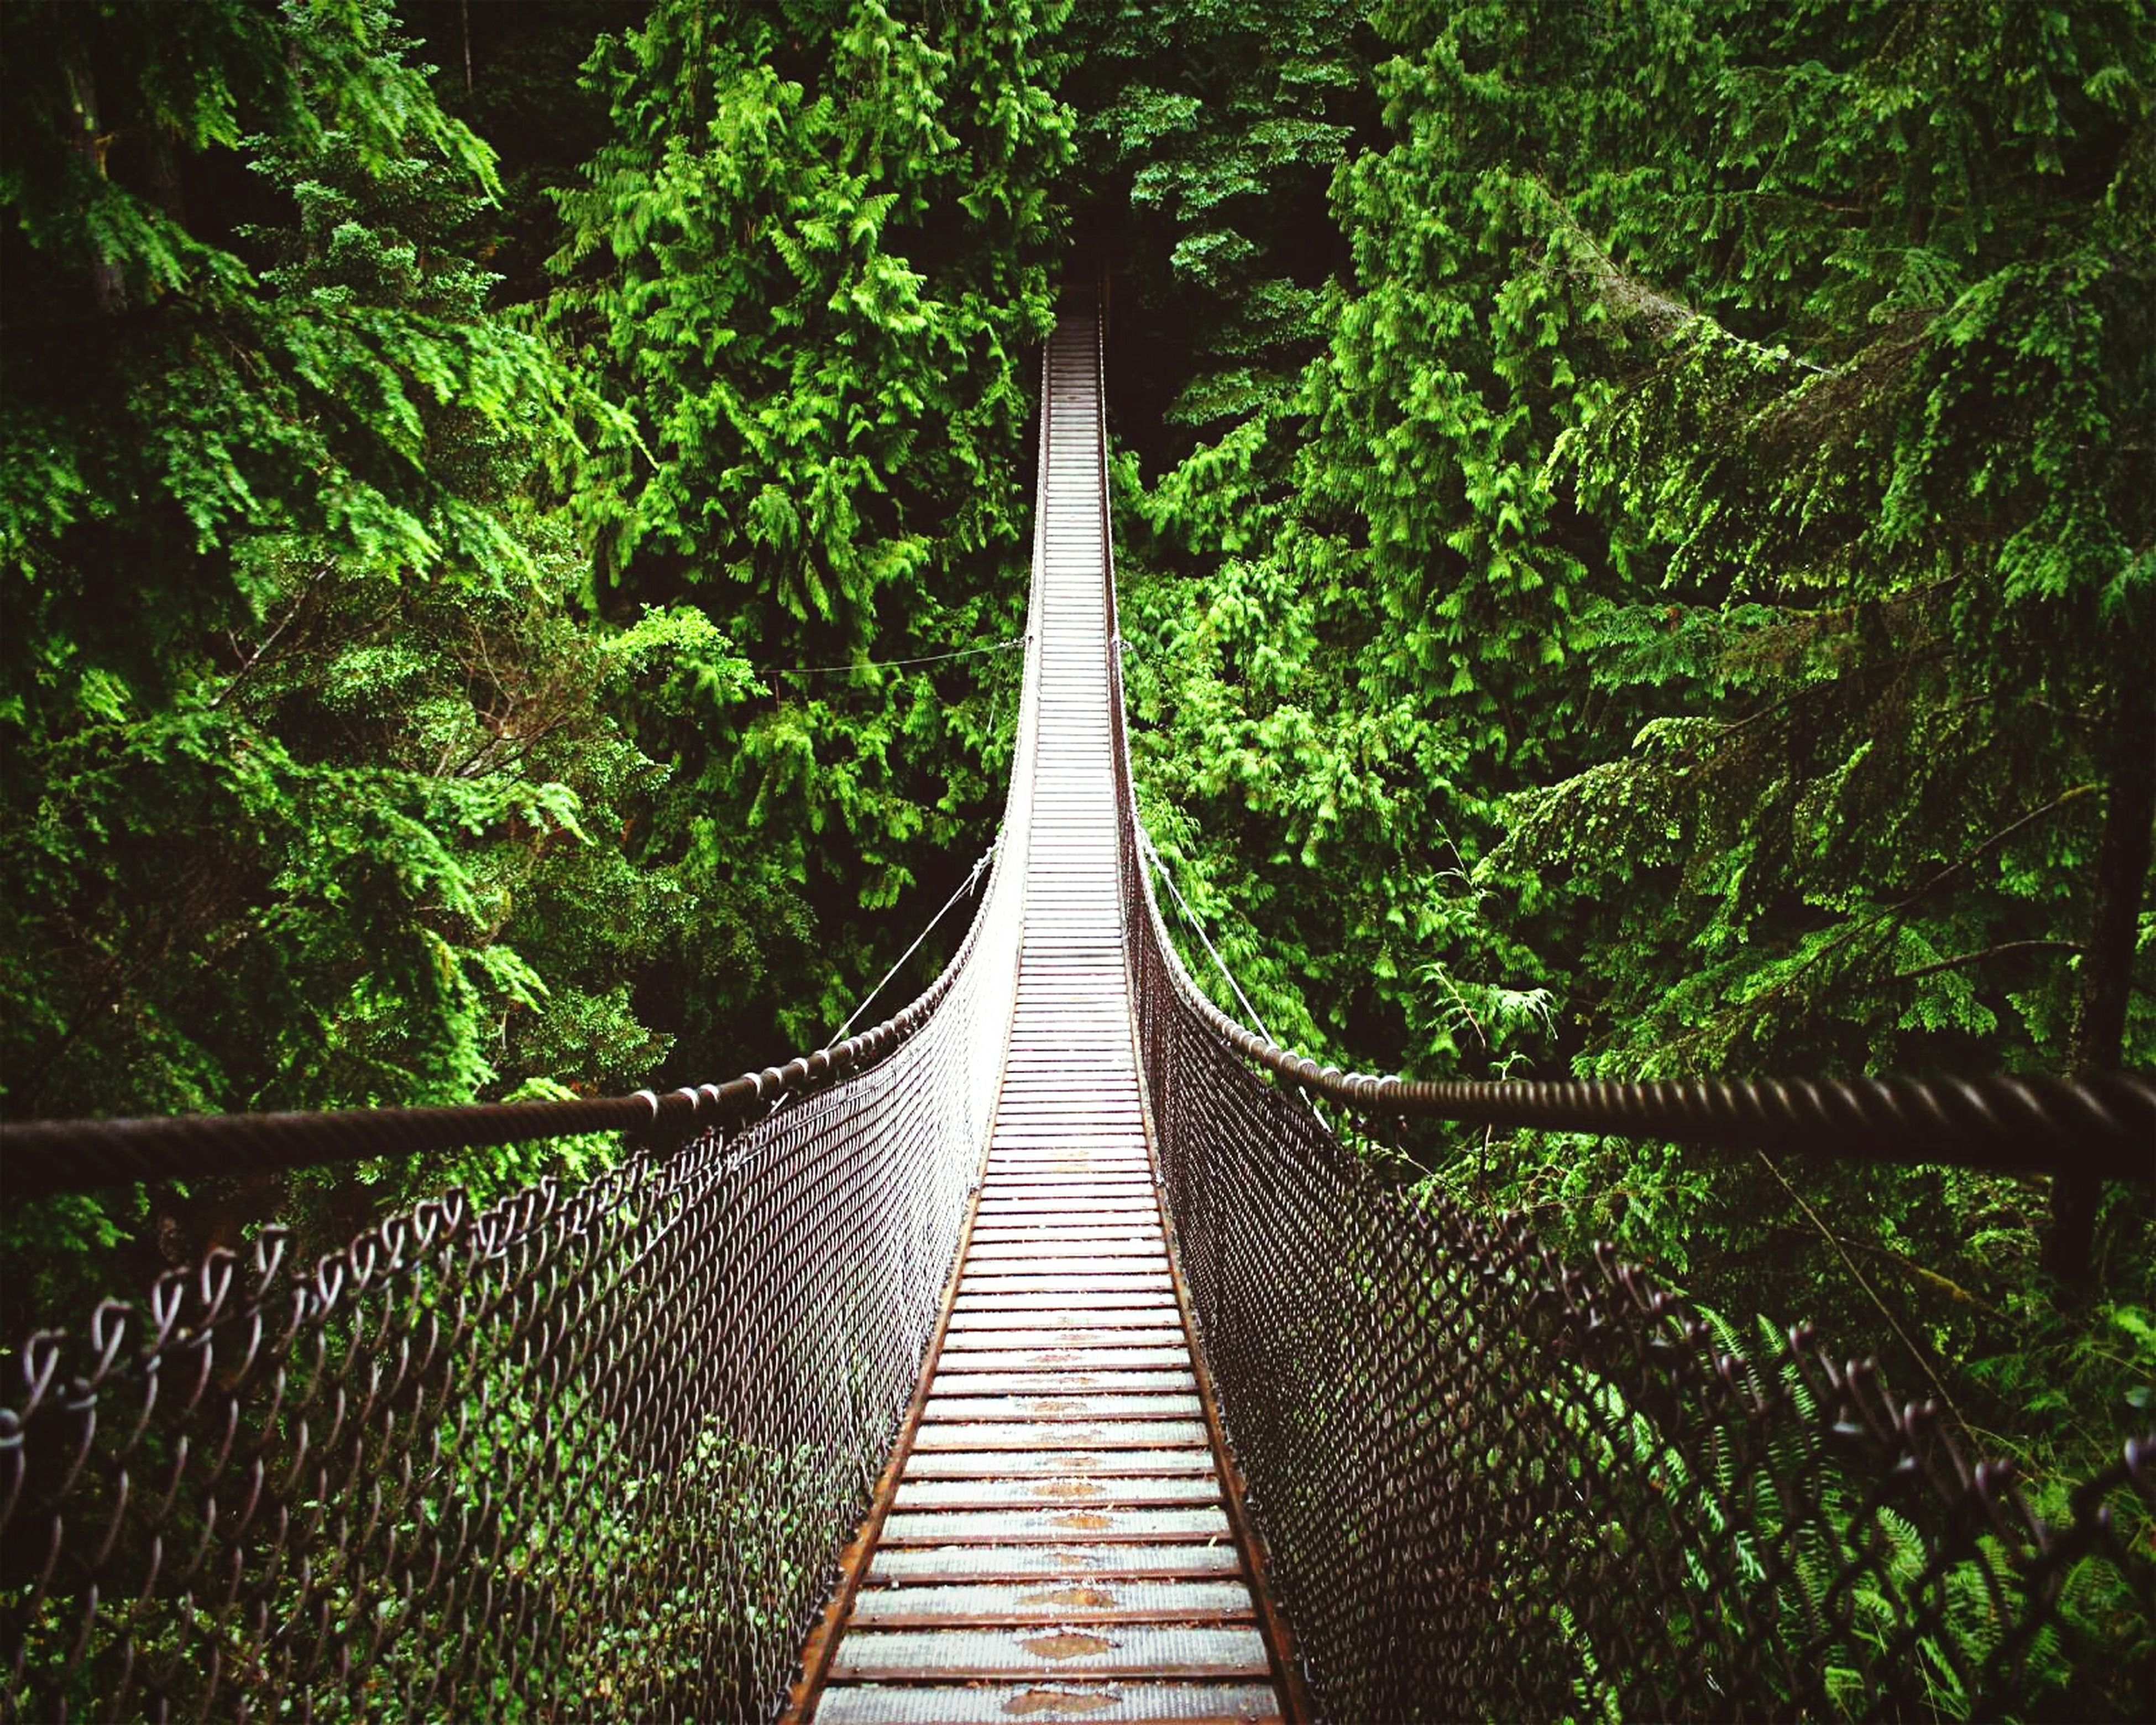 tree, growth, railing, green color, the way forward, plant, nature, forest, lush foliage, footbridge, tranquility, metal, diminishing perspective, green, beauty in nature, day, no people, outdoors, high angle view, branch